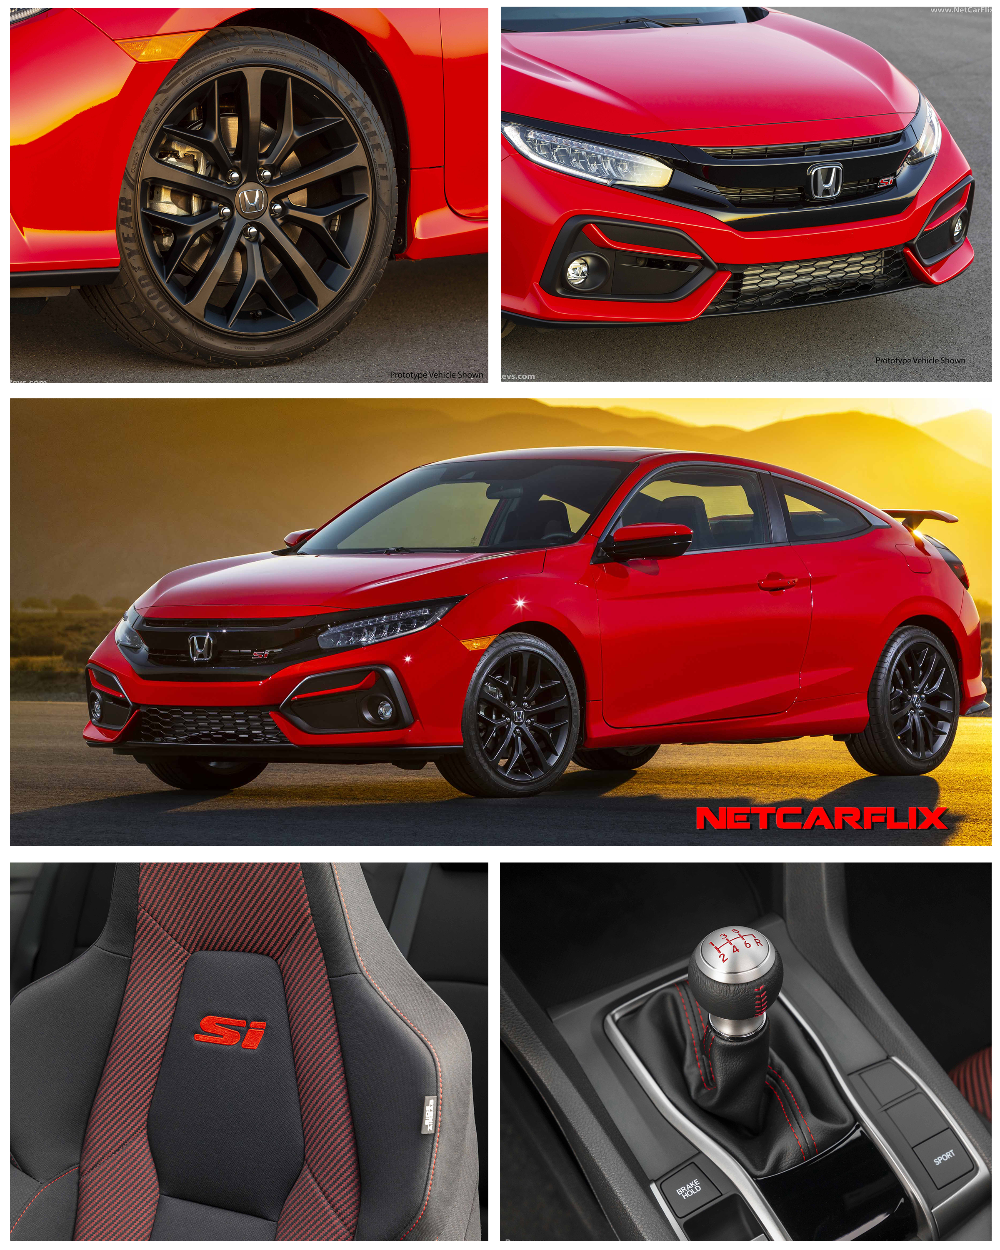 2020 Honda Civic Si Coupe HD Pictures, Videos, Specs